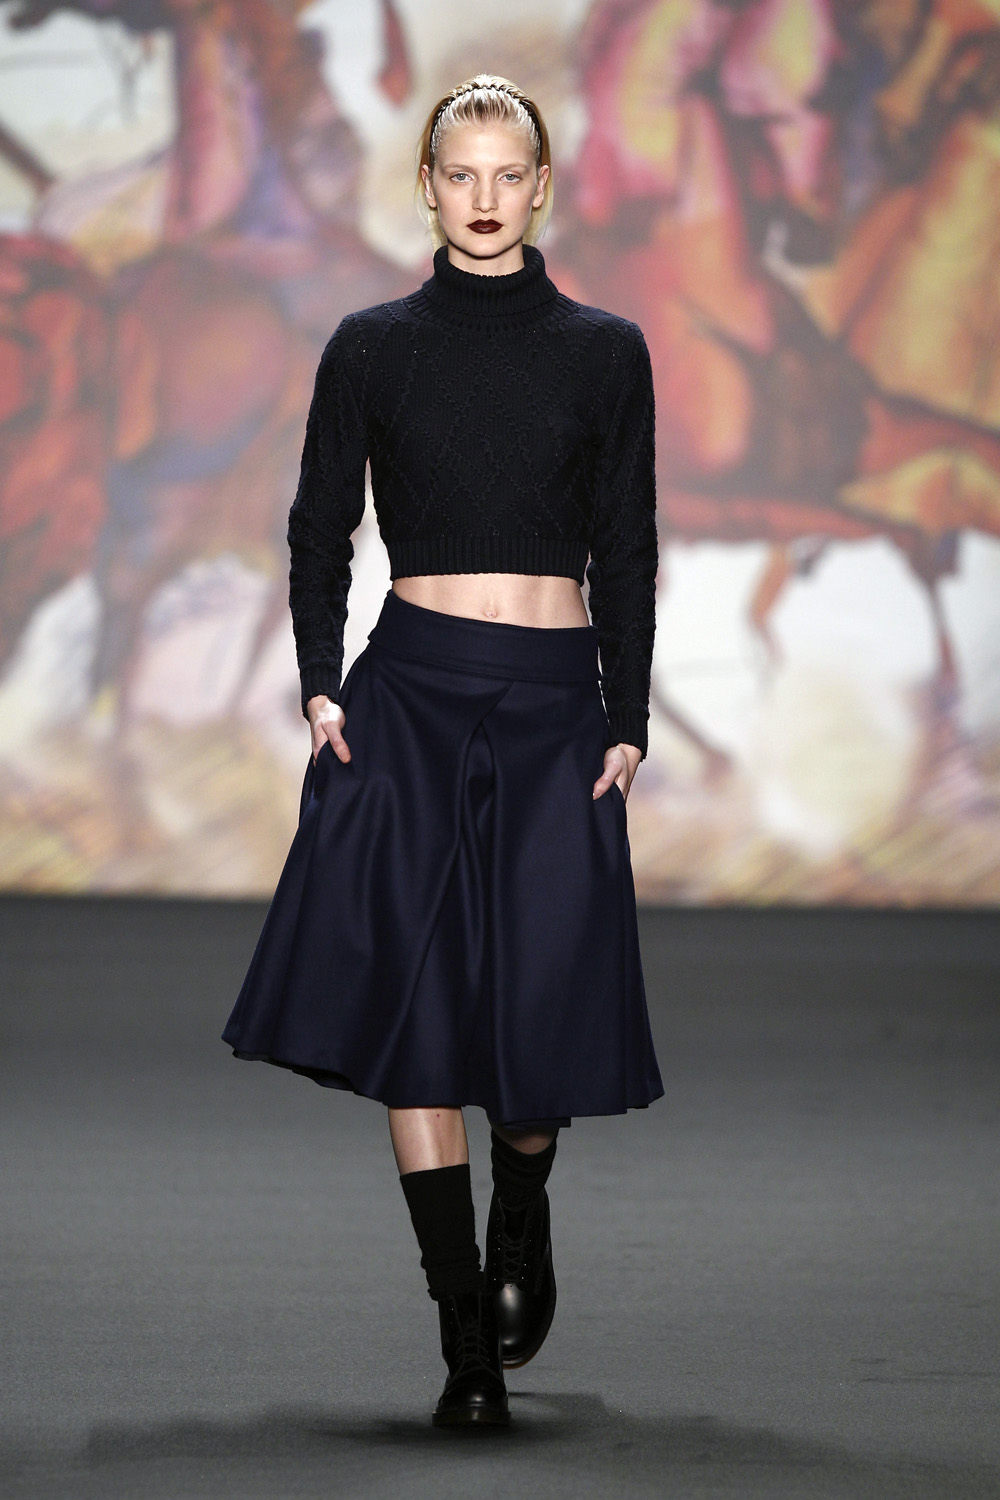 Kilian Kerner Show - Mercedes-Benz Fashion Week Autumn/Winter 2014/15